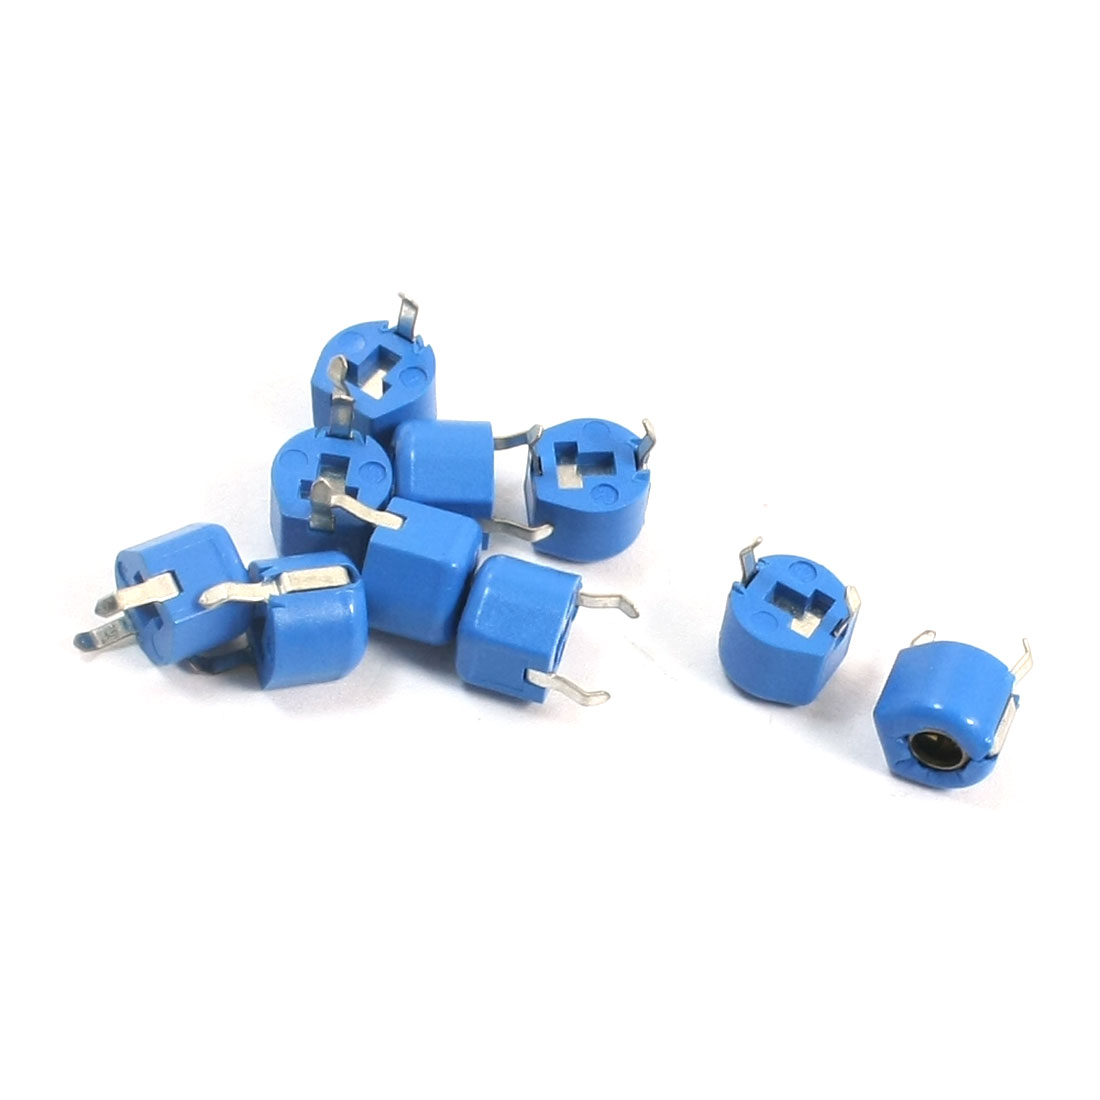 10Pcs Blue Housing 6mm Diameter 5pF Top Adjustable Trimmer Capacitors